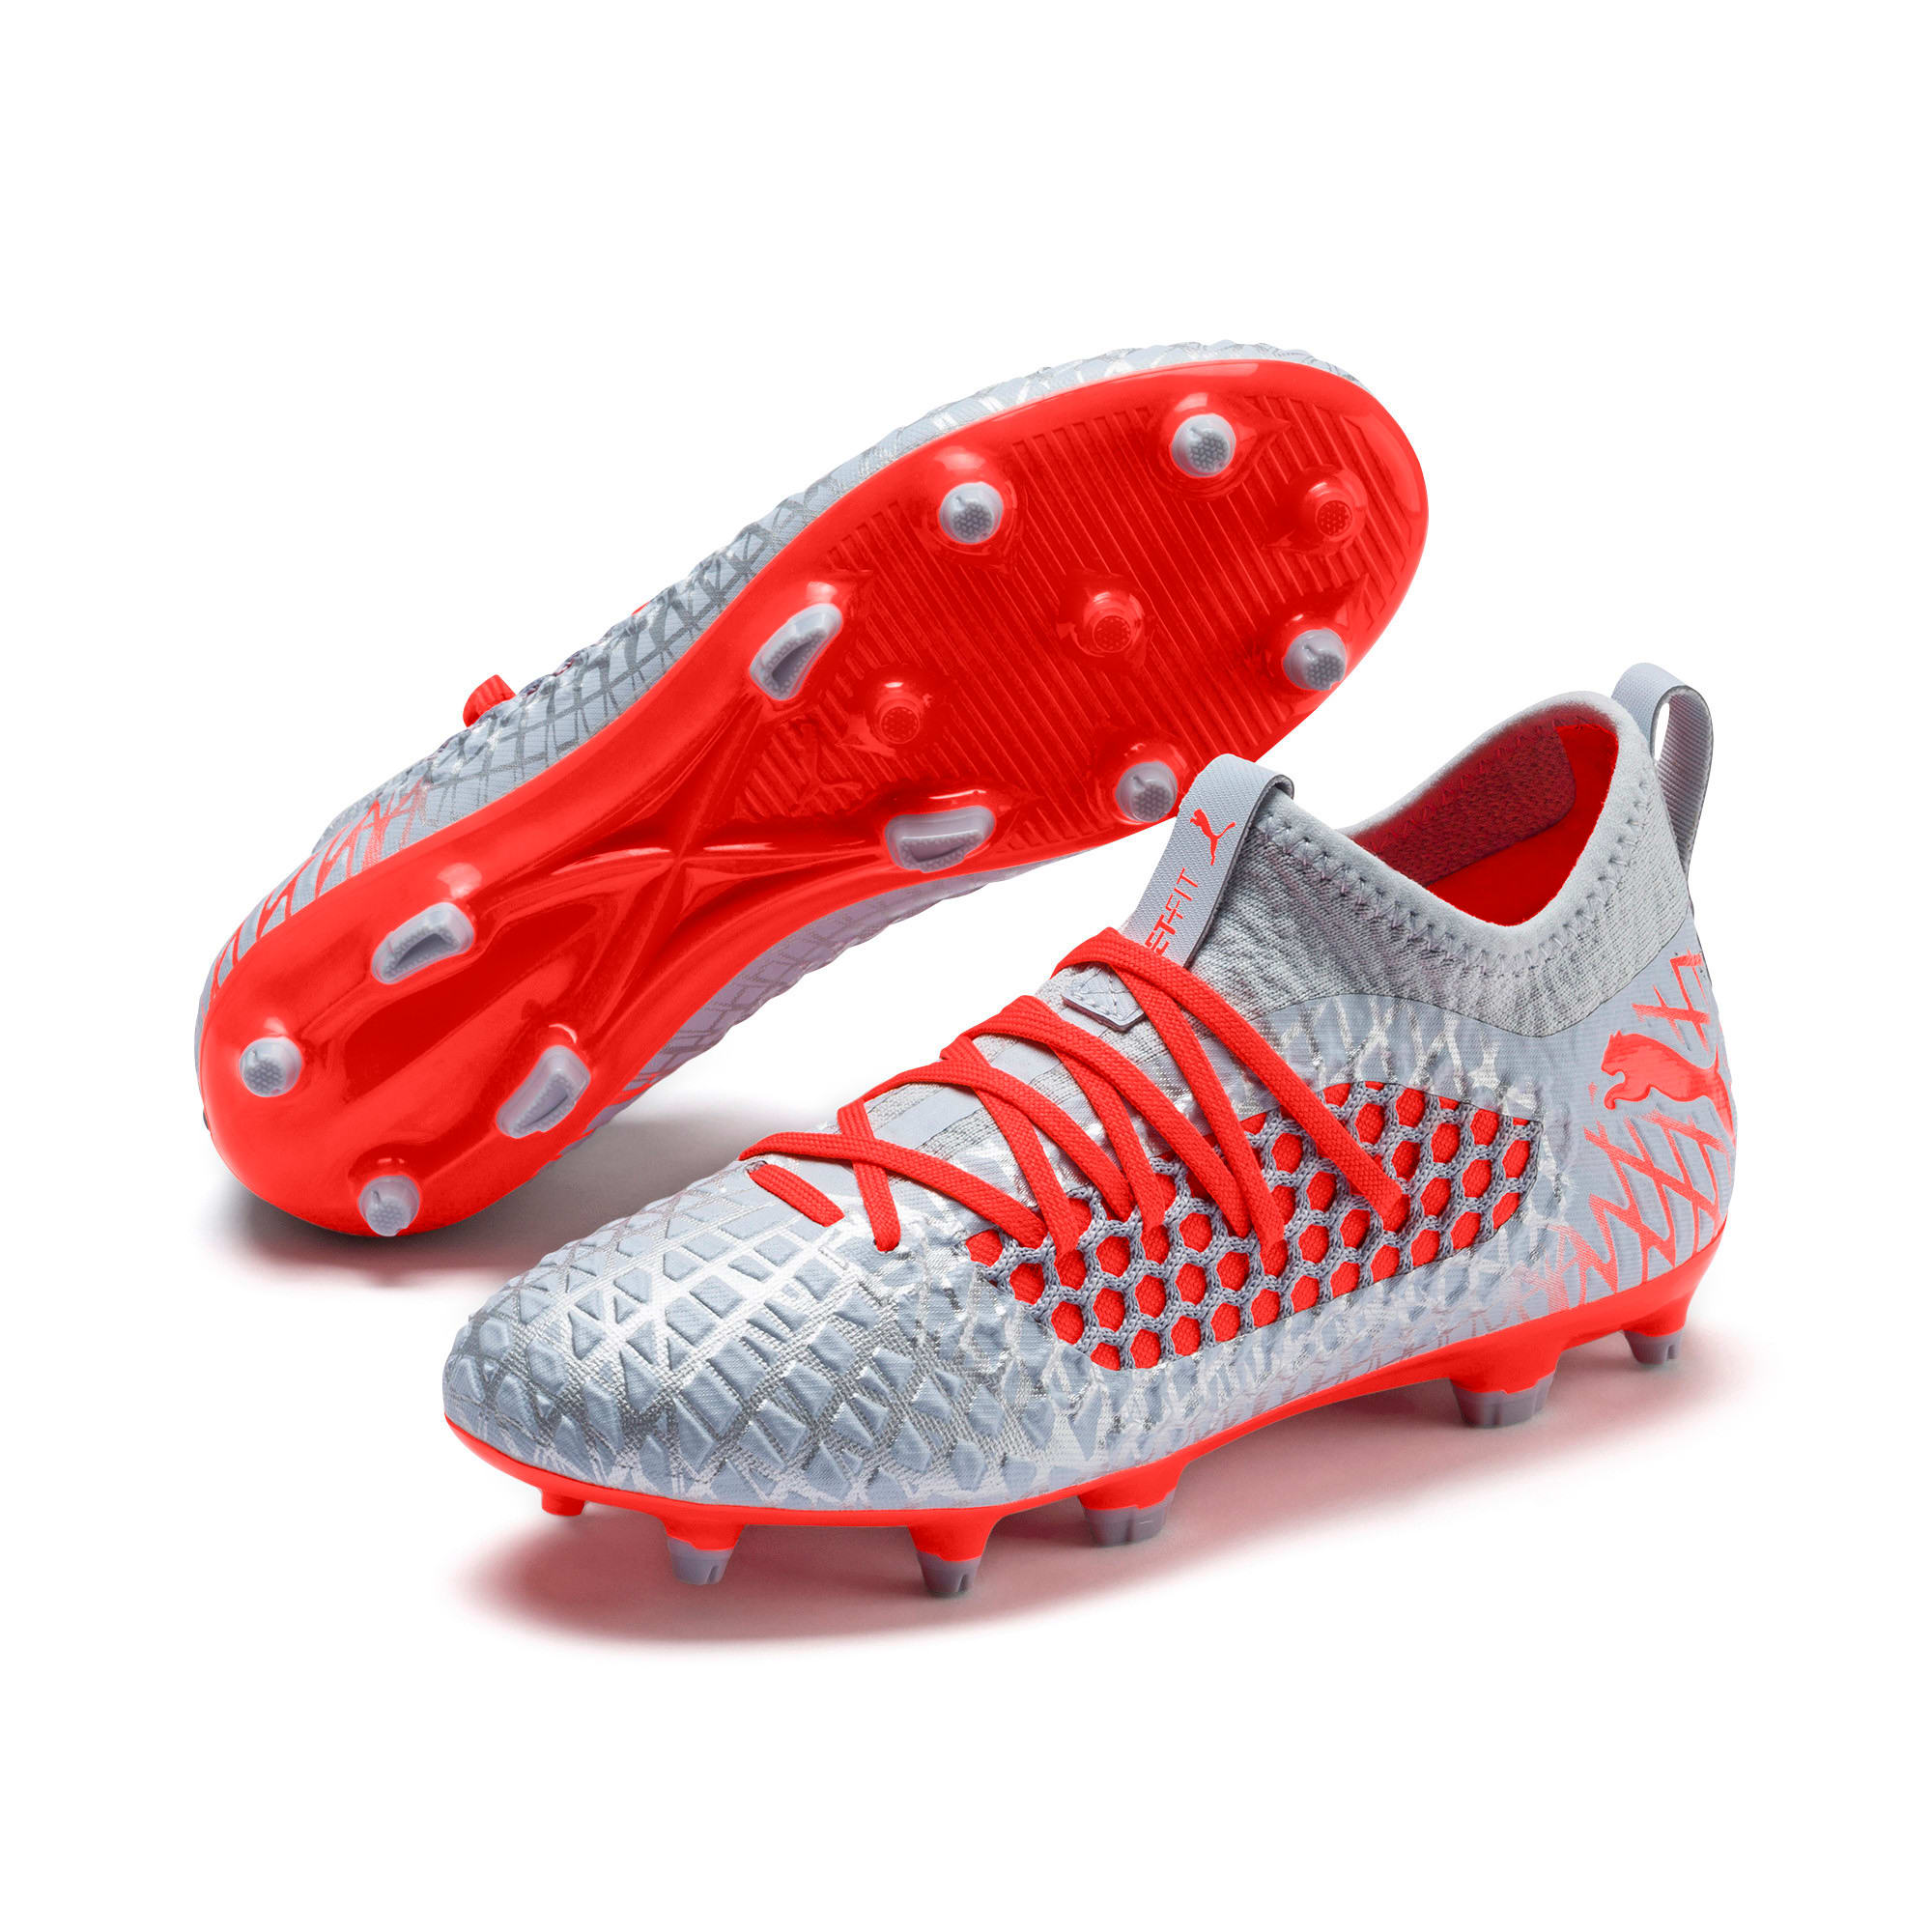 Thumbnail 2 of FUTURE 4.3 NETFIT FG/AG Youth Fußballschuhe, Glacial Blue-Nrgy Red, medium